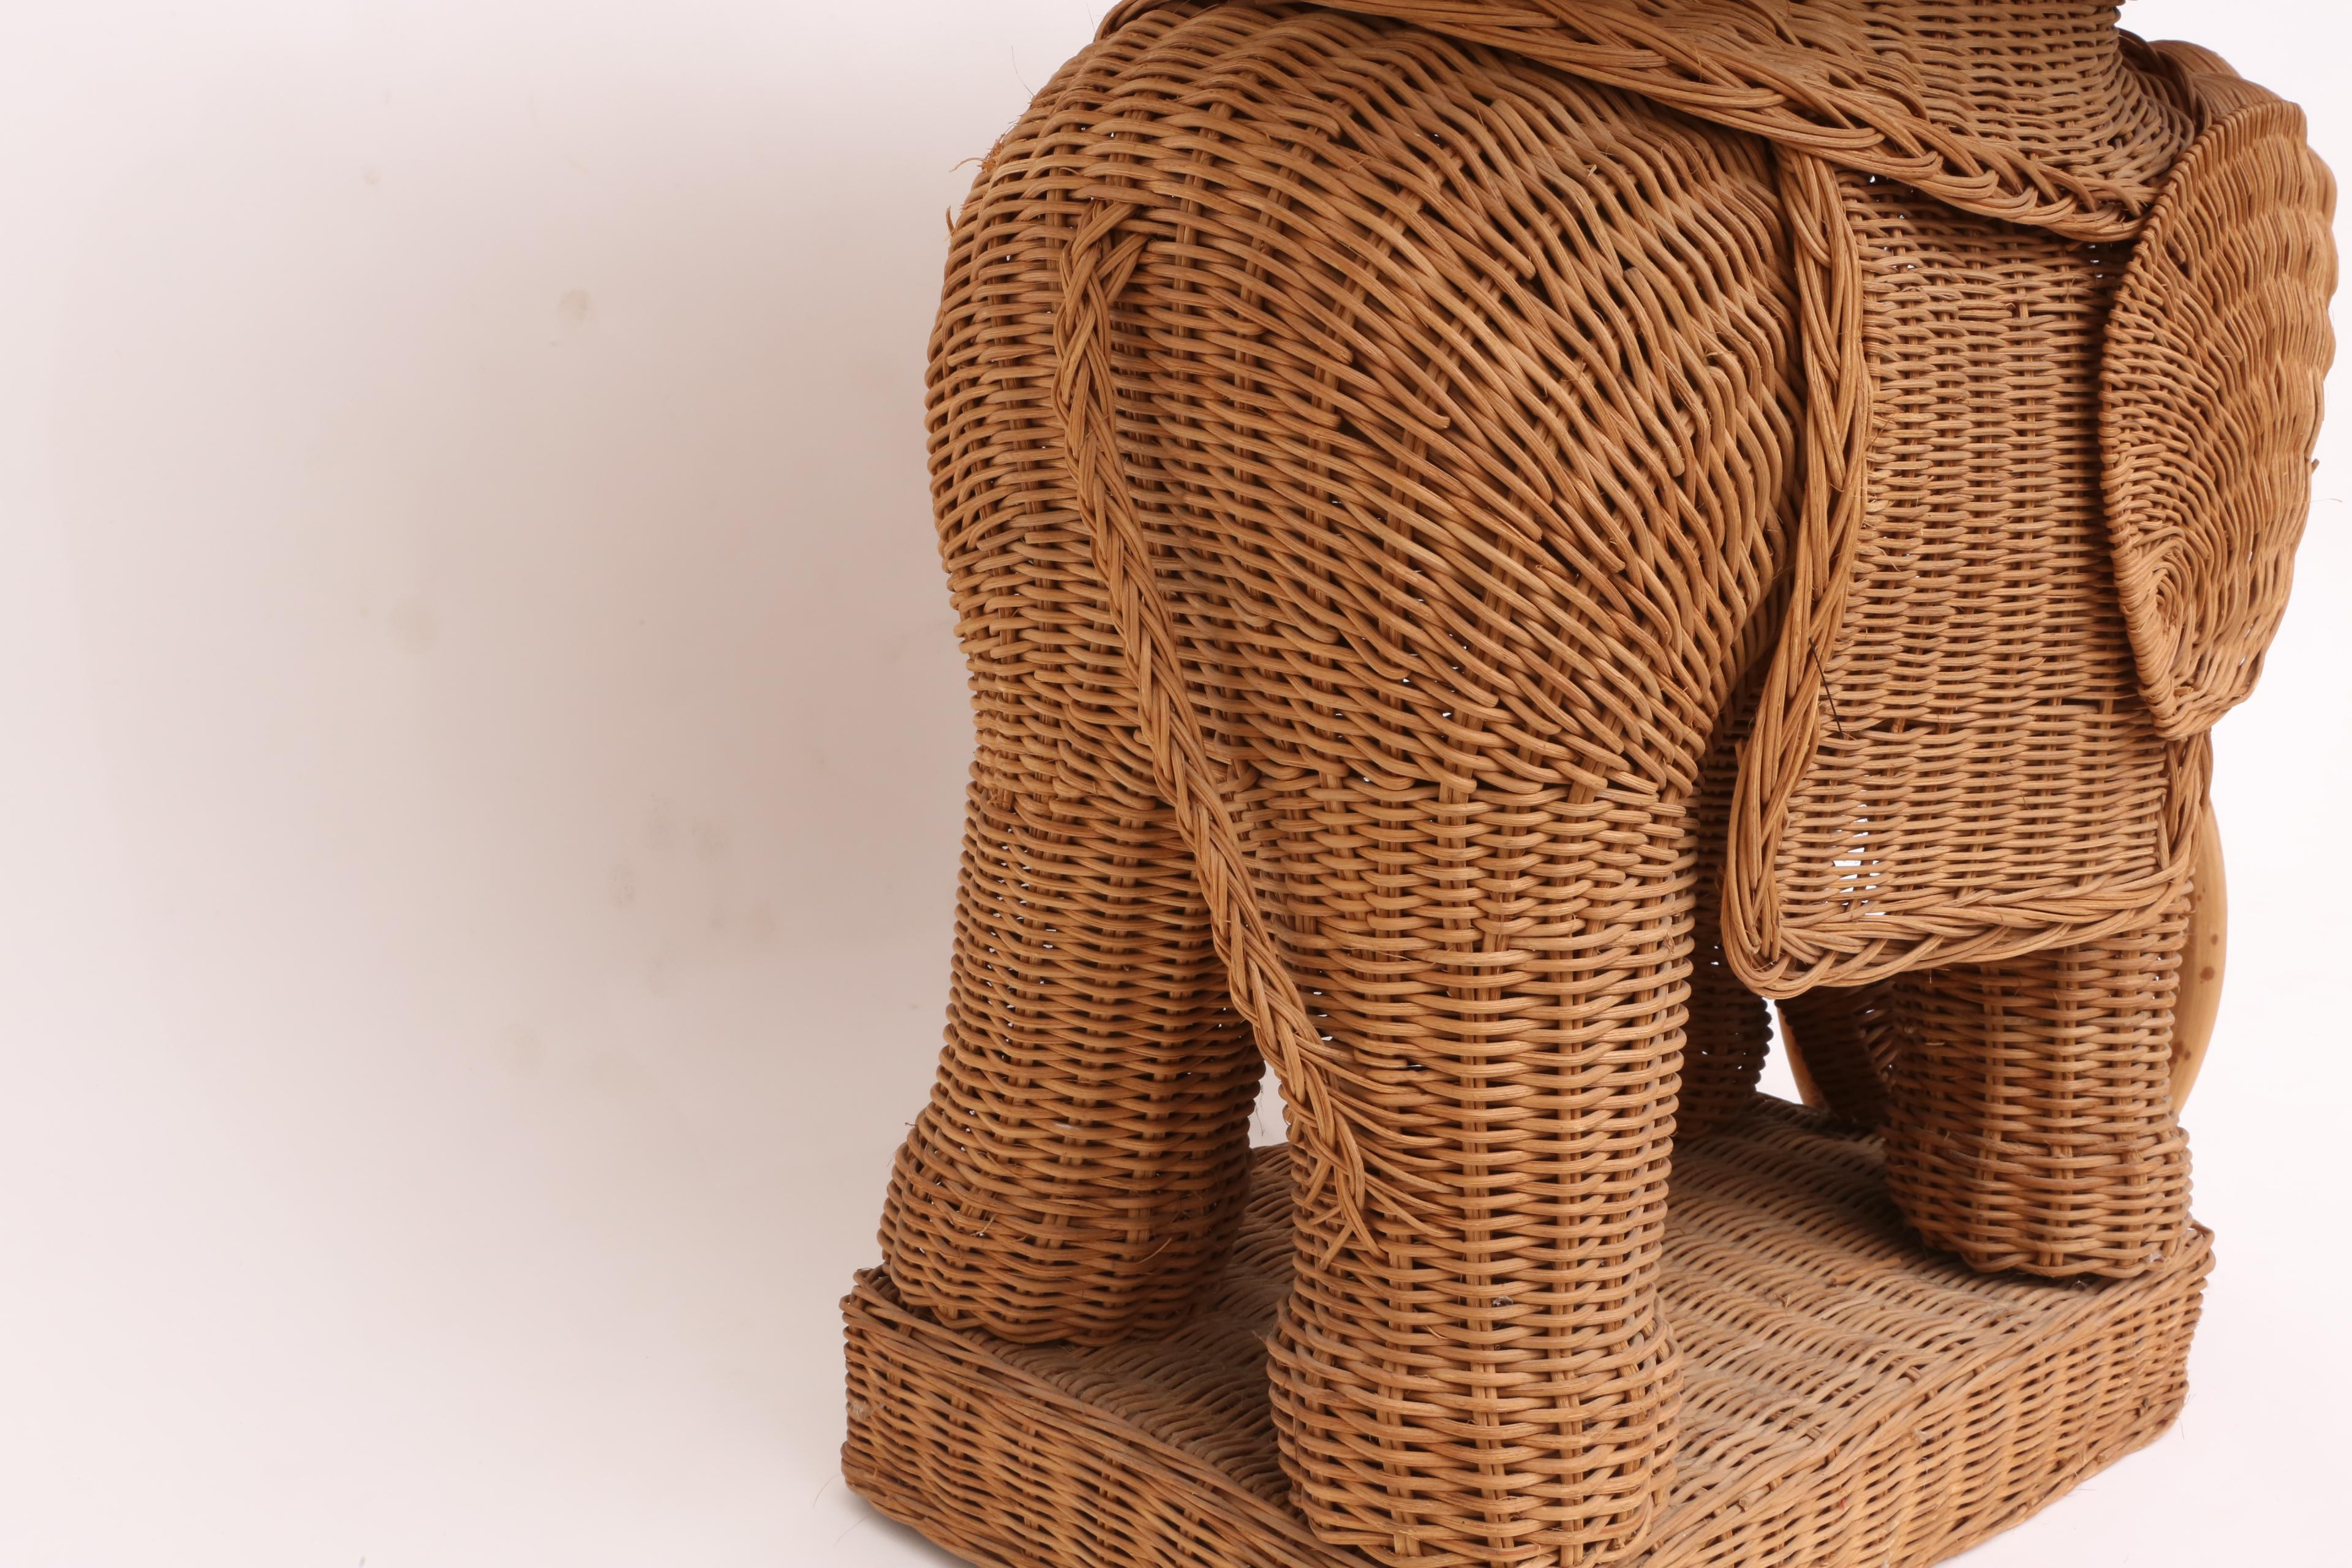 Captivating Vintage Rattan Wicker Elephant Side Table   Image 6 Of 9